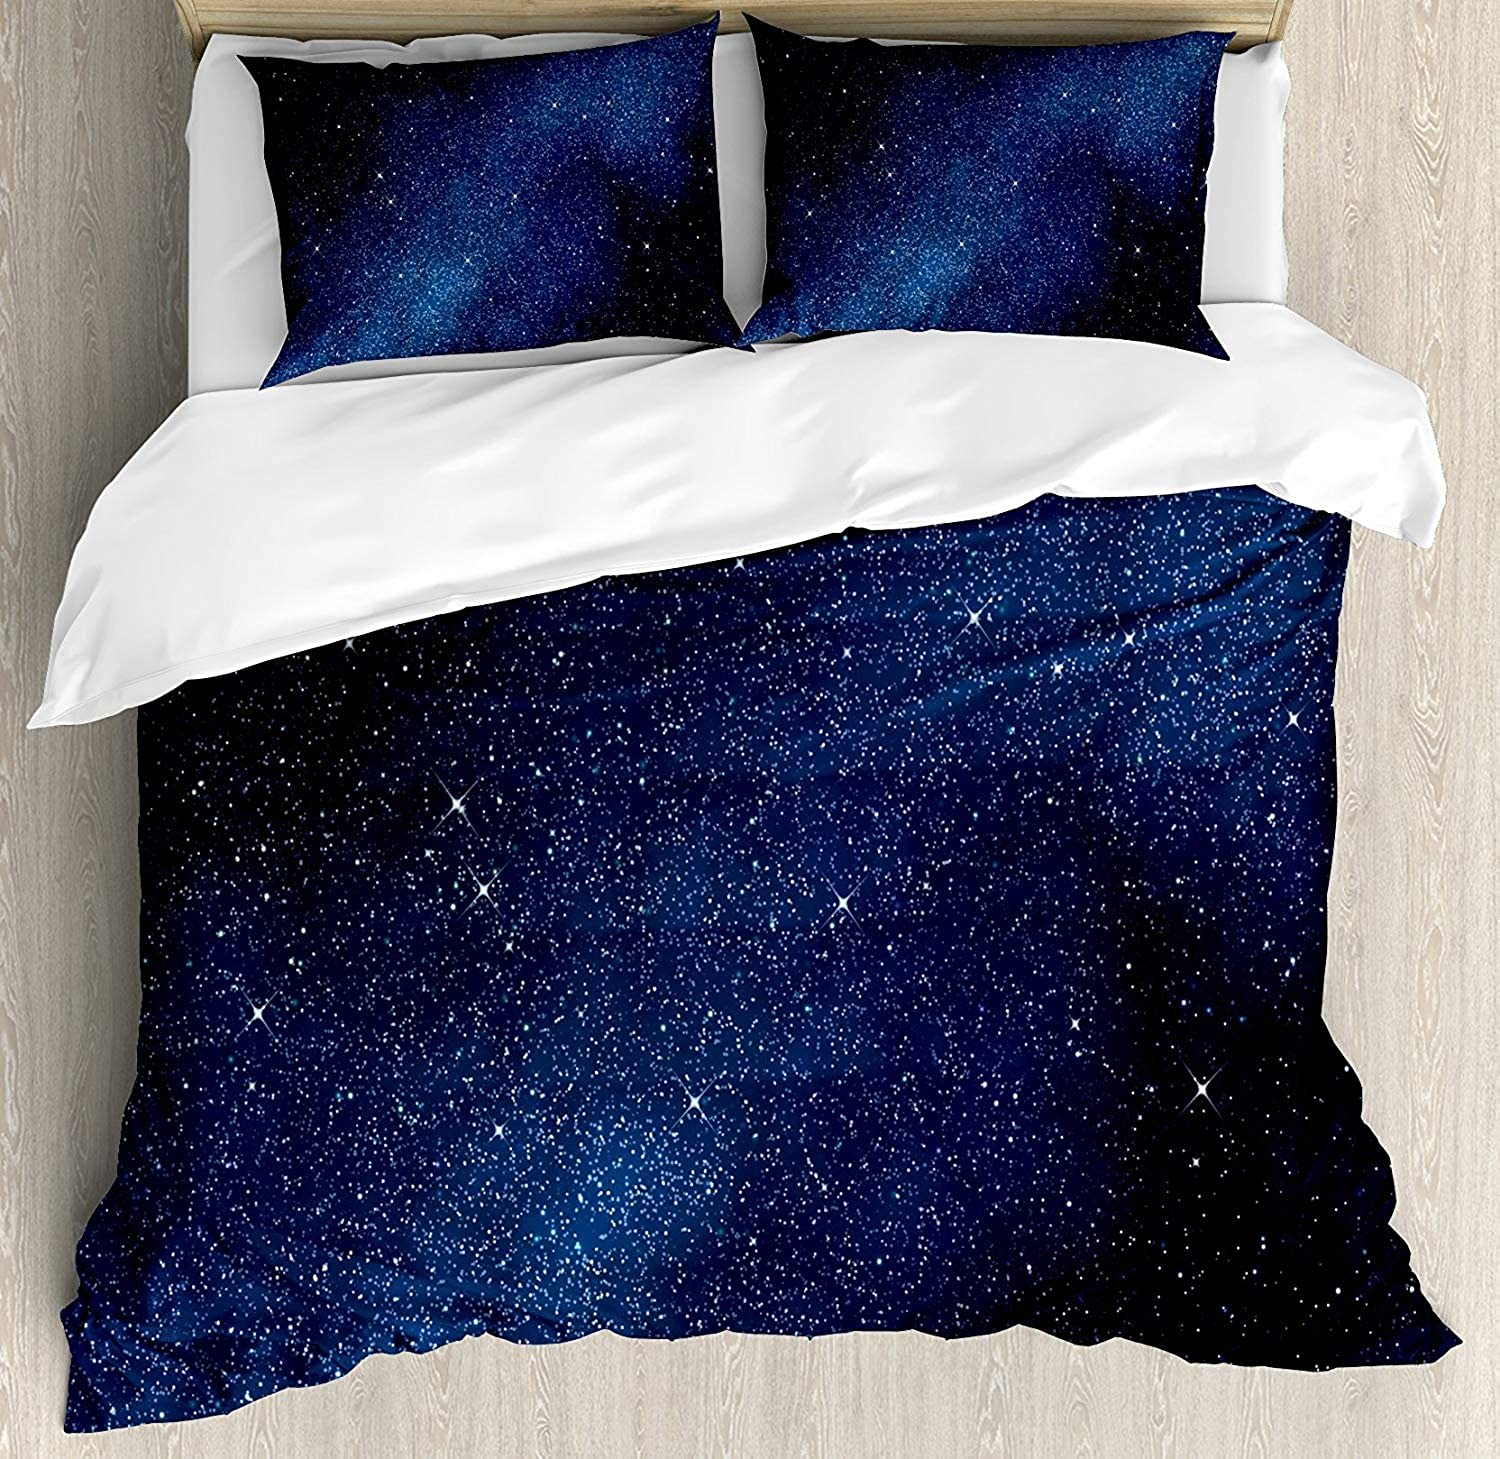 Fantasy Star 130 Night Duvet Cover Set, Space with Billion Stars Inspiring View Nebula Galaxy Cosmos Infinite Universe, Include 1 Flat Sheet 1 Duvet Cover and 2 Pillow Cases, Dark bluee White